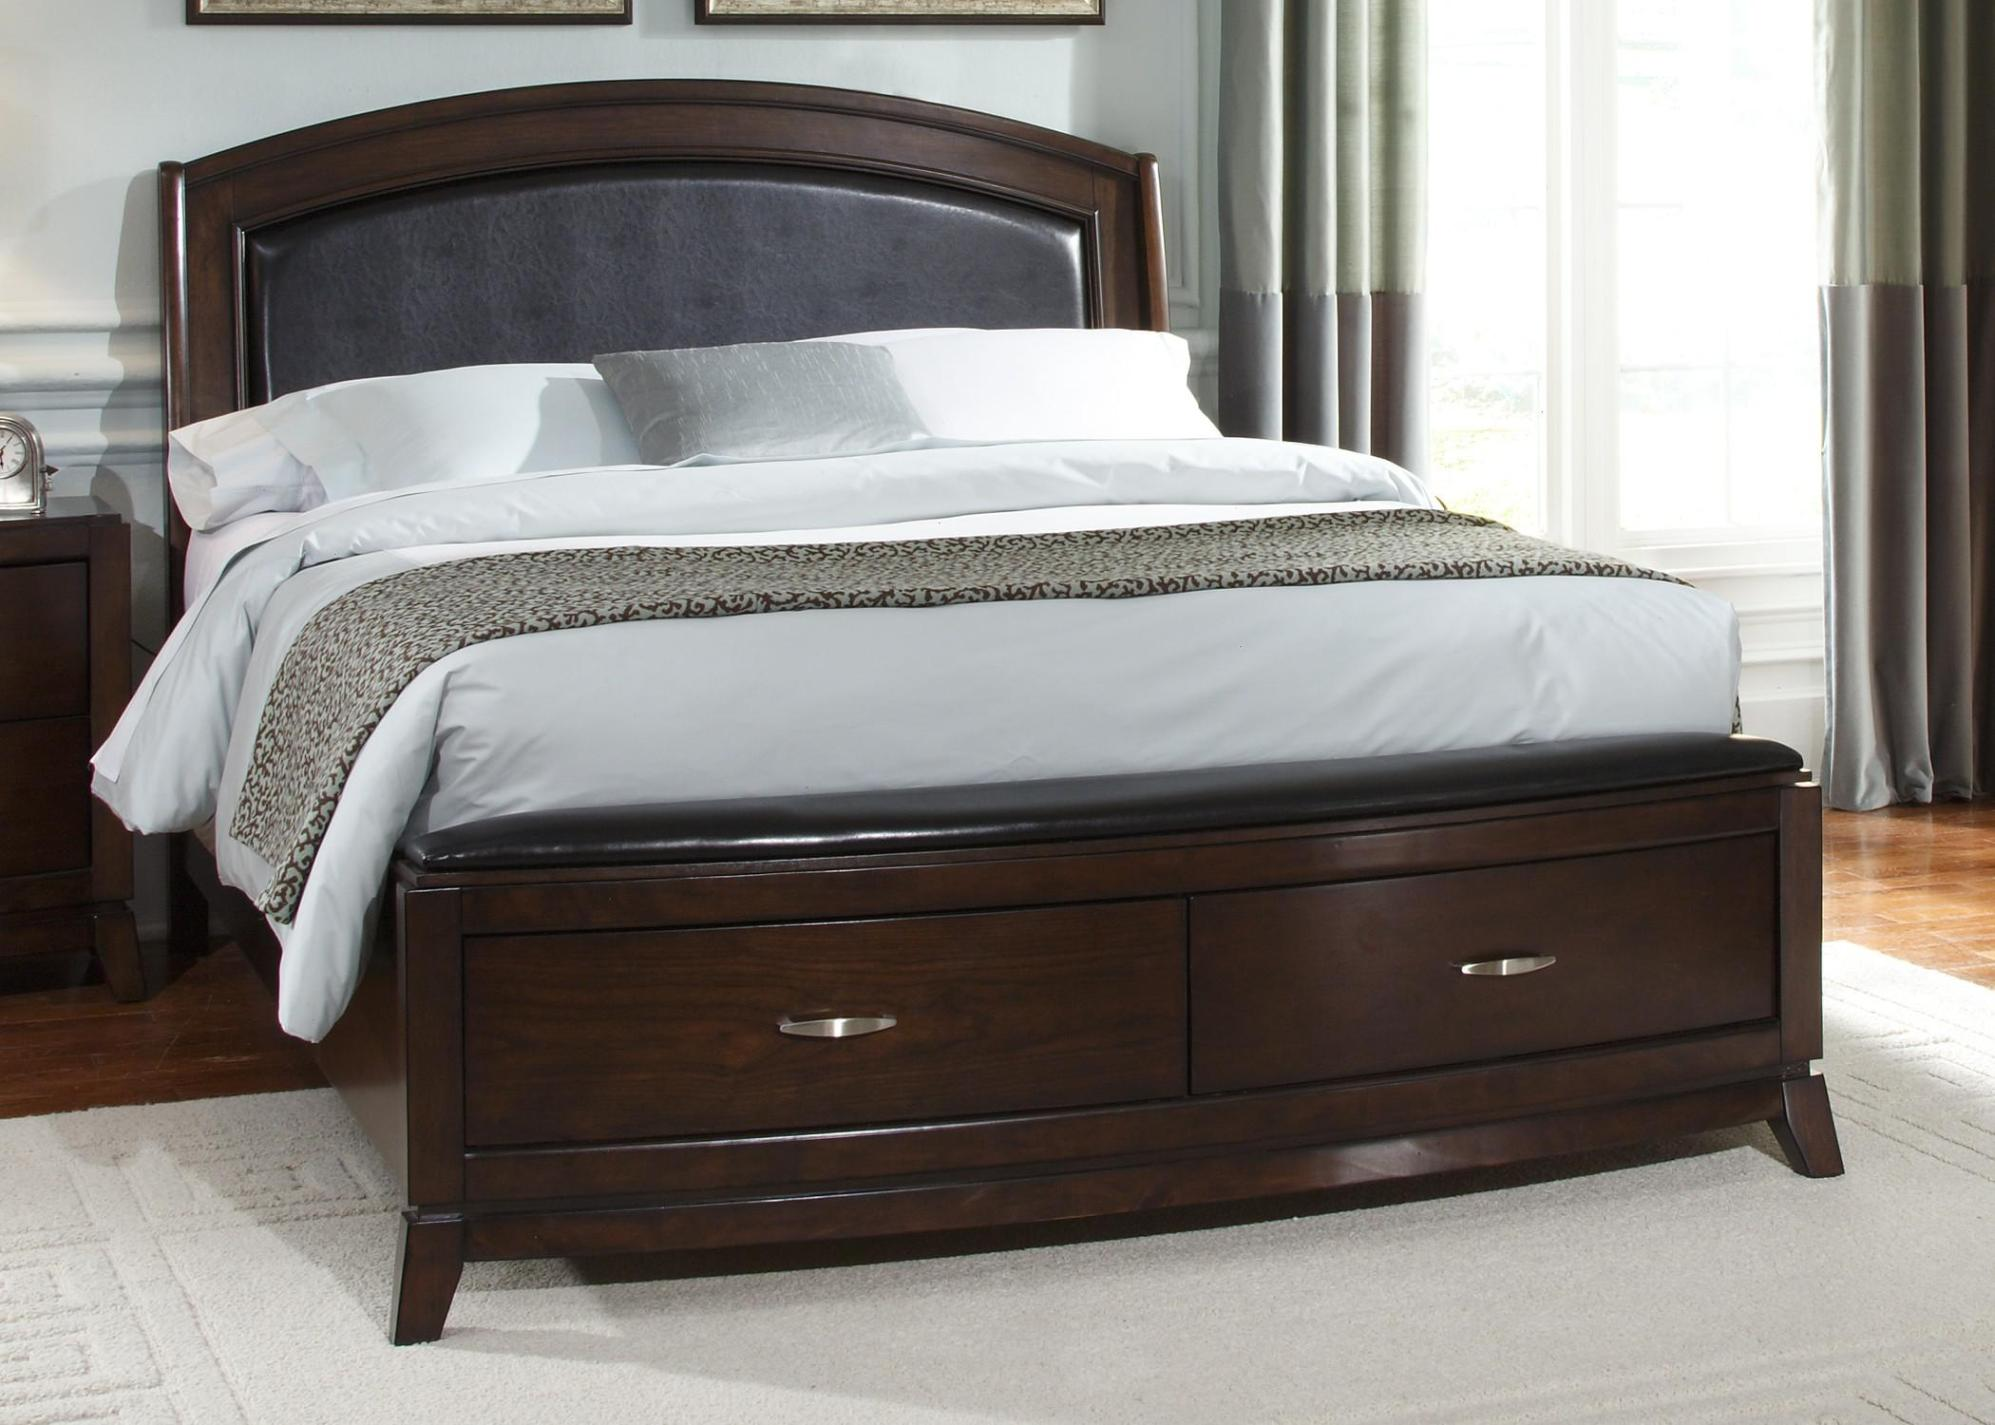 Image of: Headboard Queen Bed